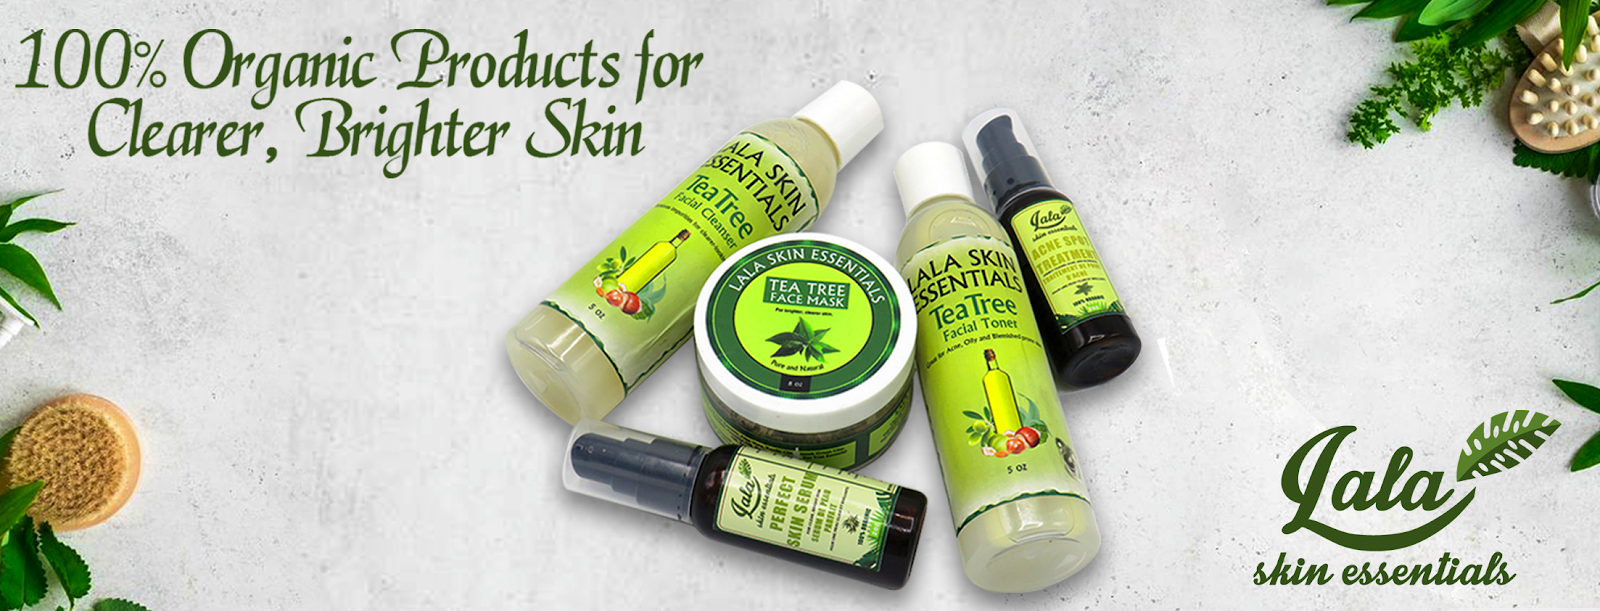 100% Organic Products for Clearer, Brighter Skin